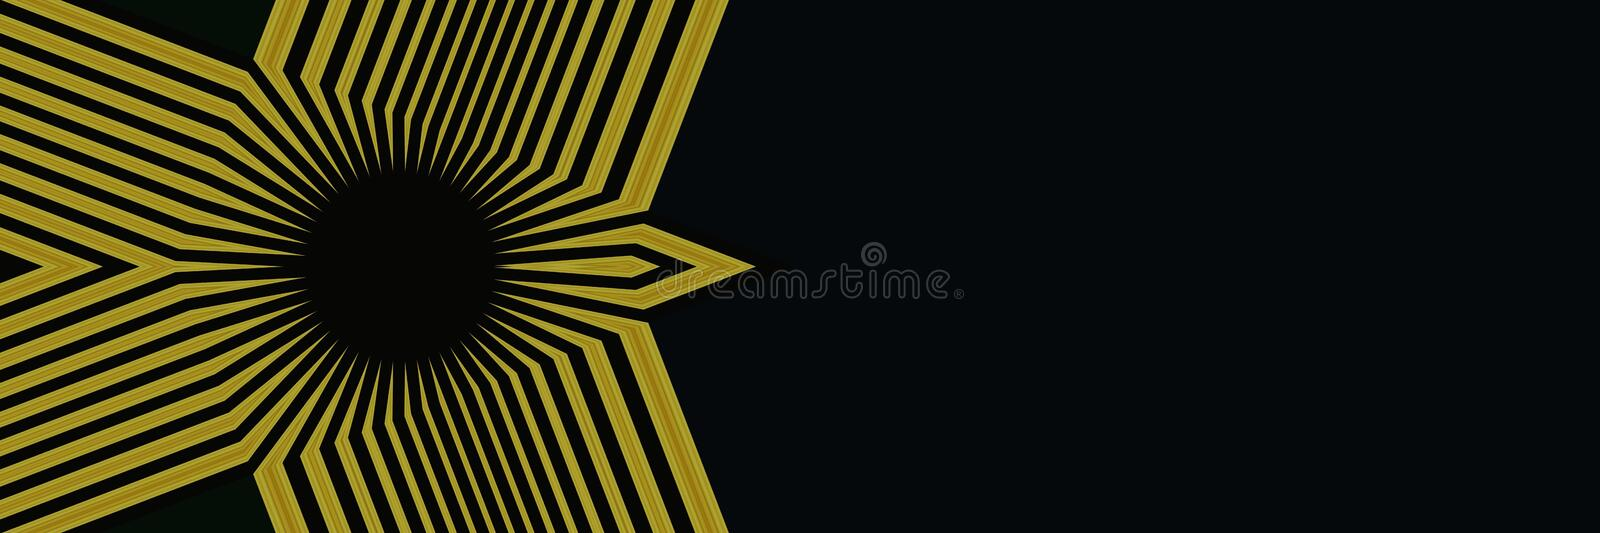 Black, Yellow, Black And White, Pattern stock photos